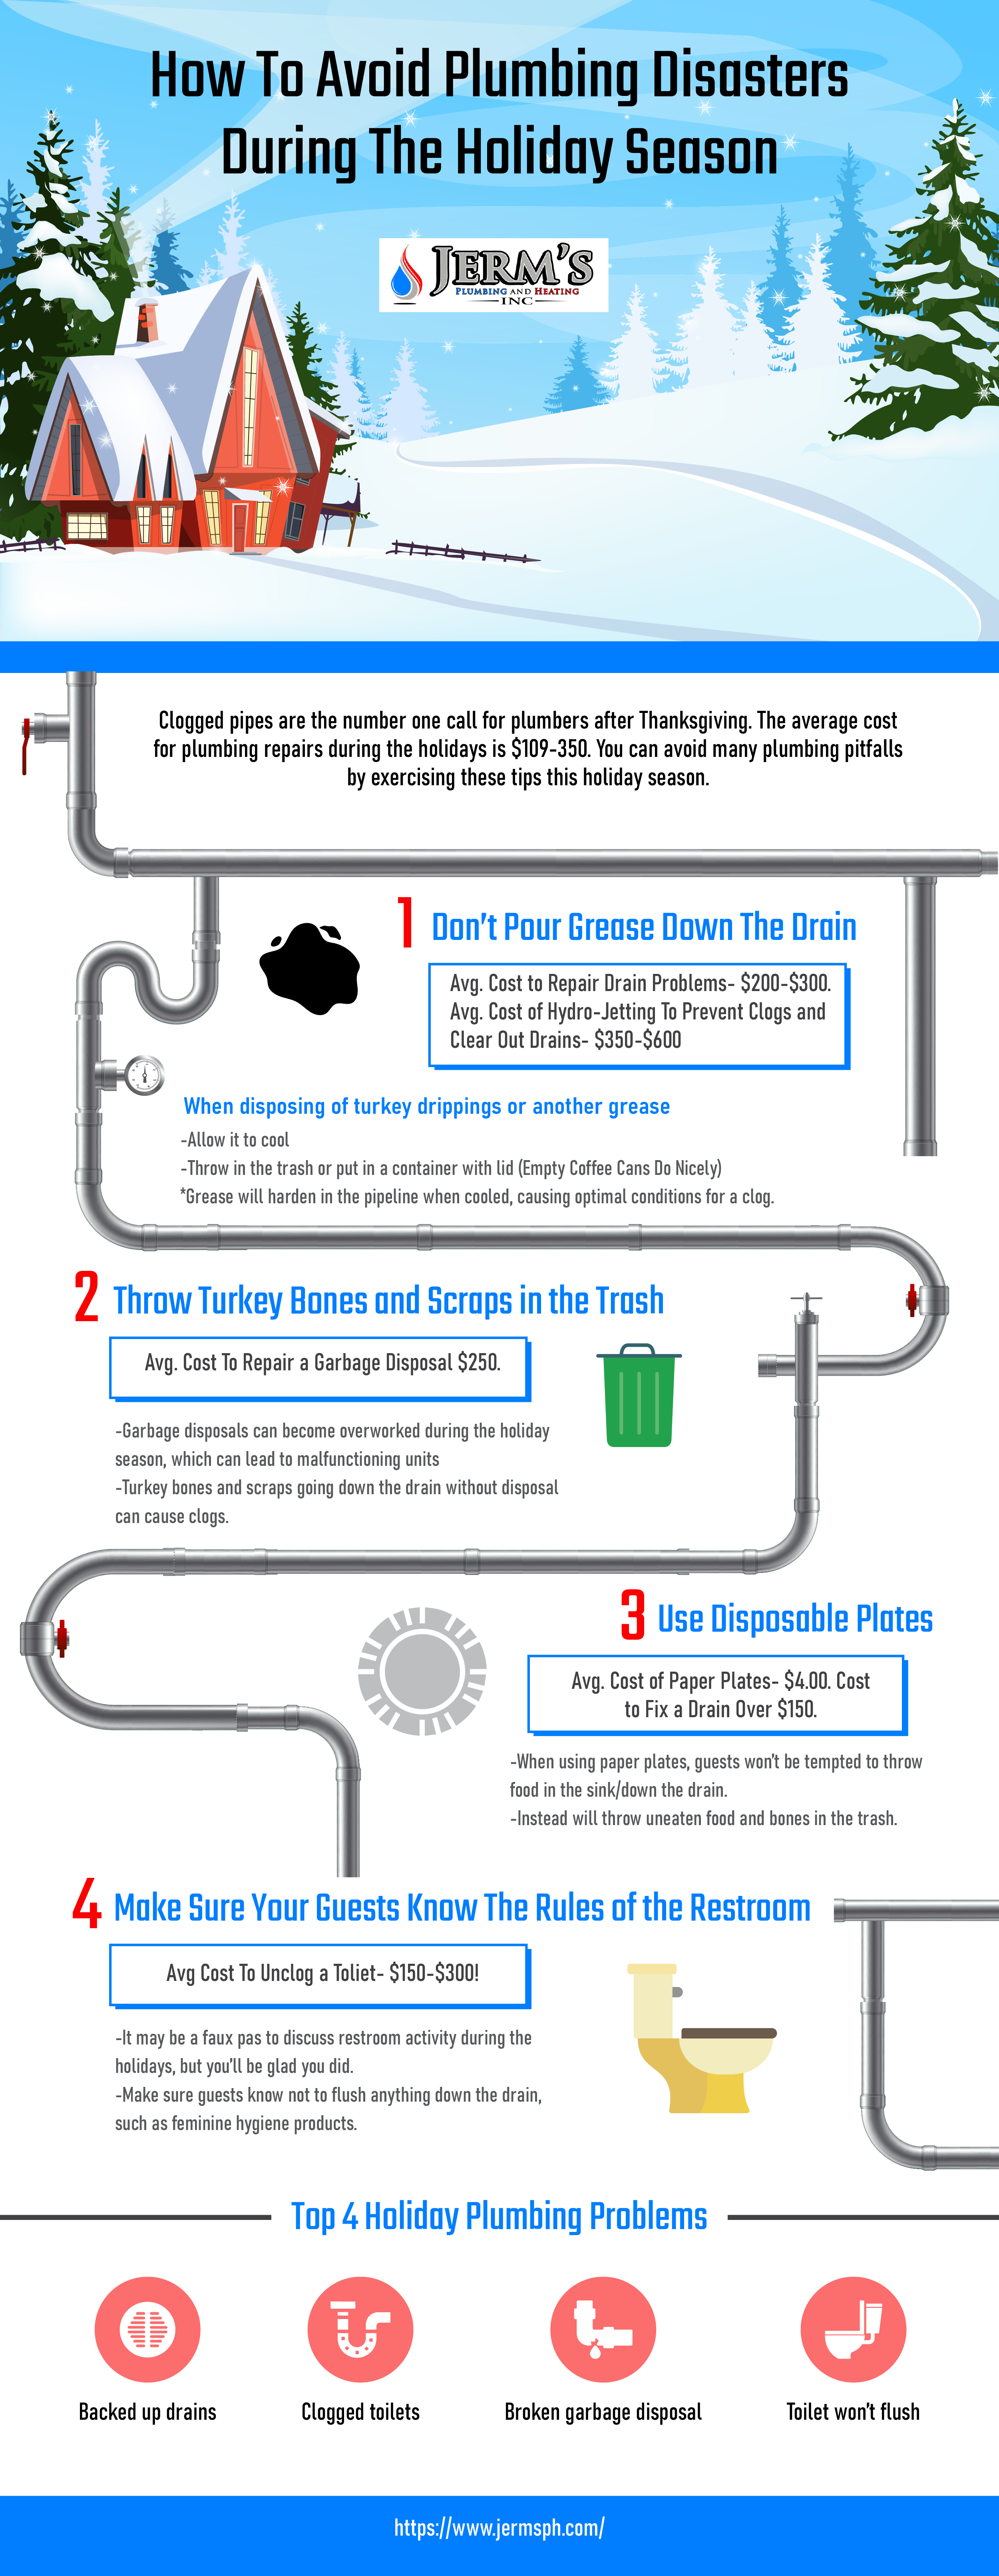 How To Avoid Plumbing Disasters During The Holiday Season